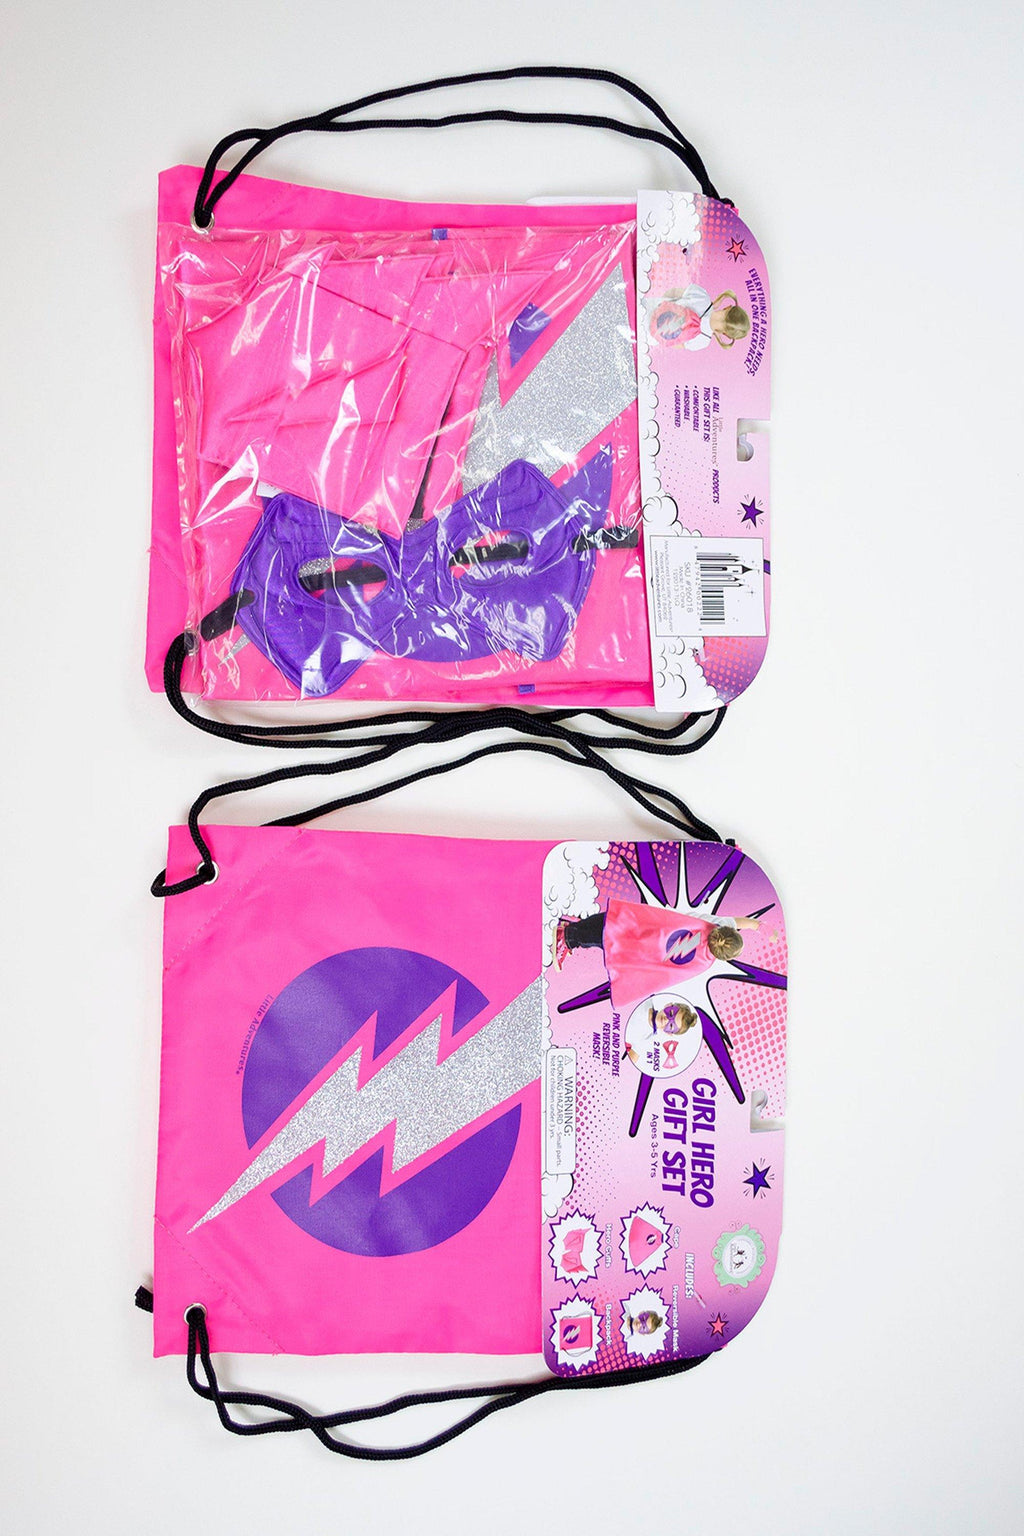 The Drawstring Backpack Gift Sets - Drawstring Backpack Girl Hero Gift Set